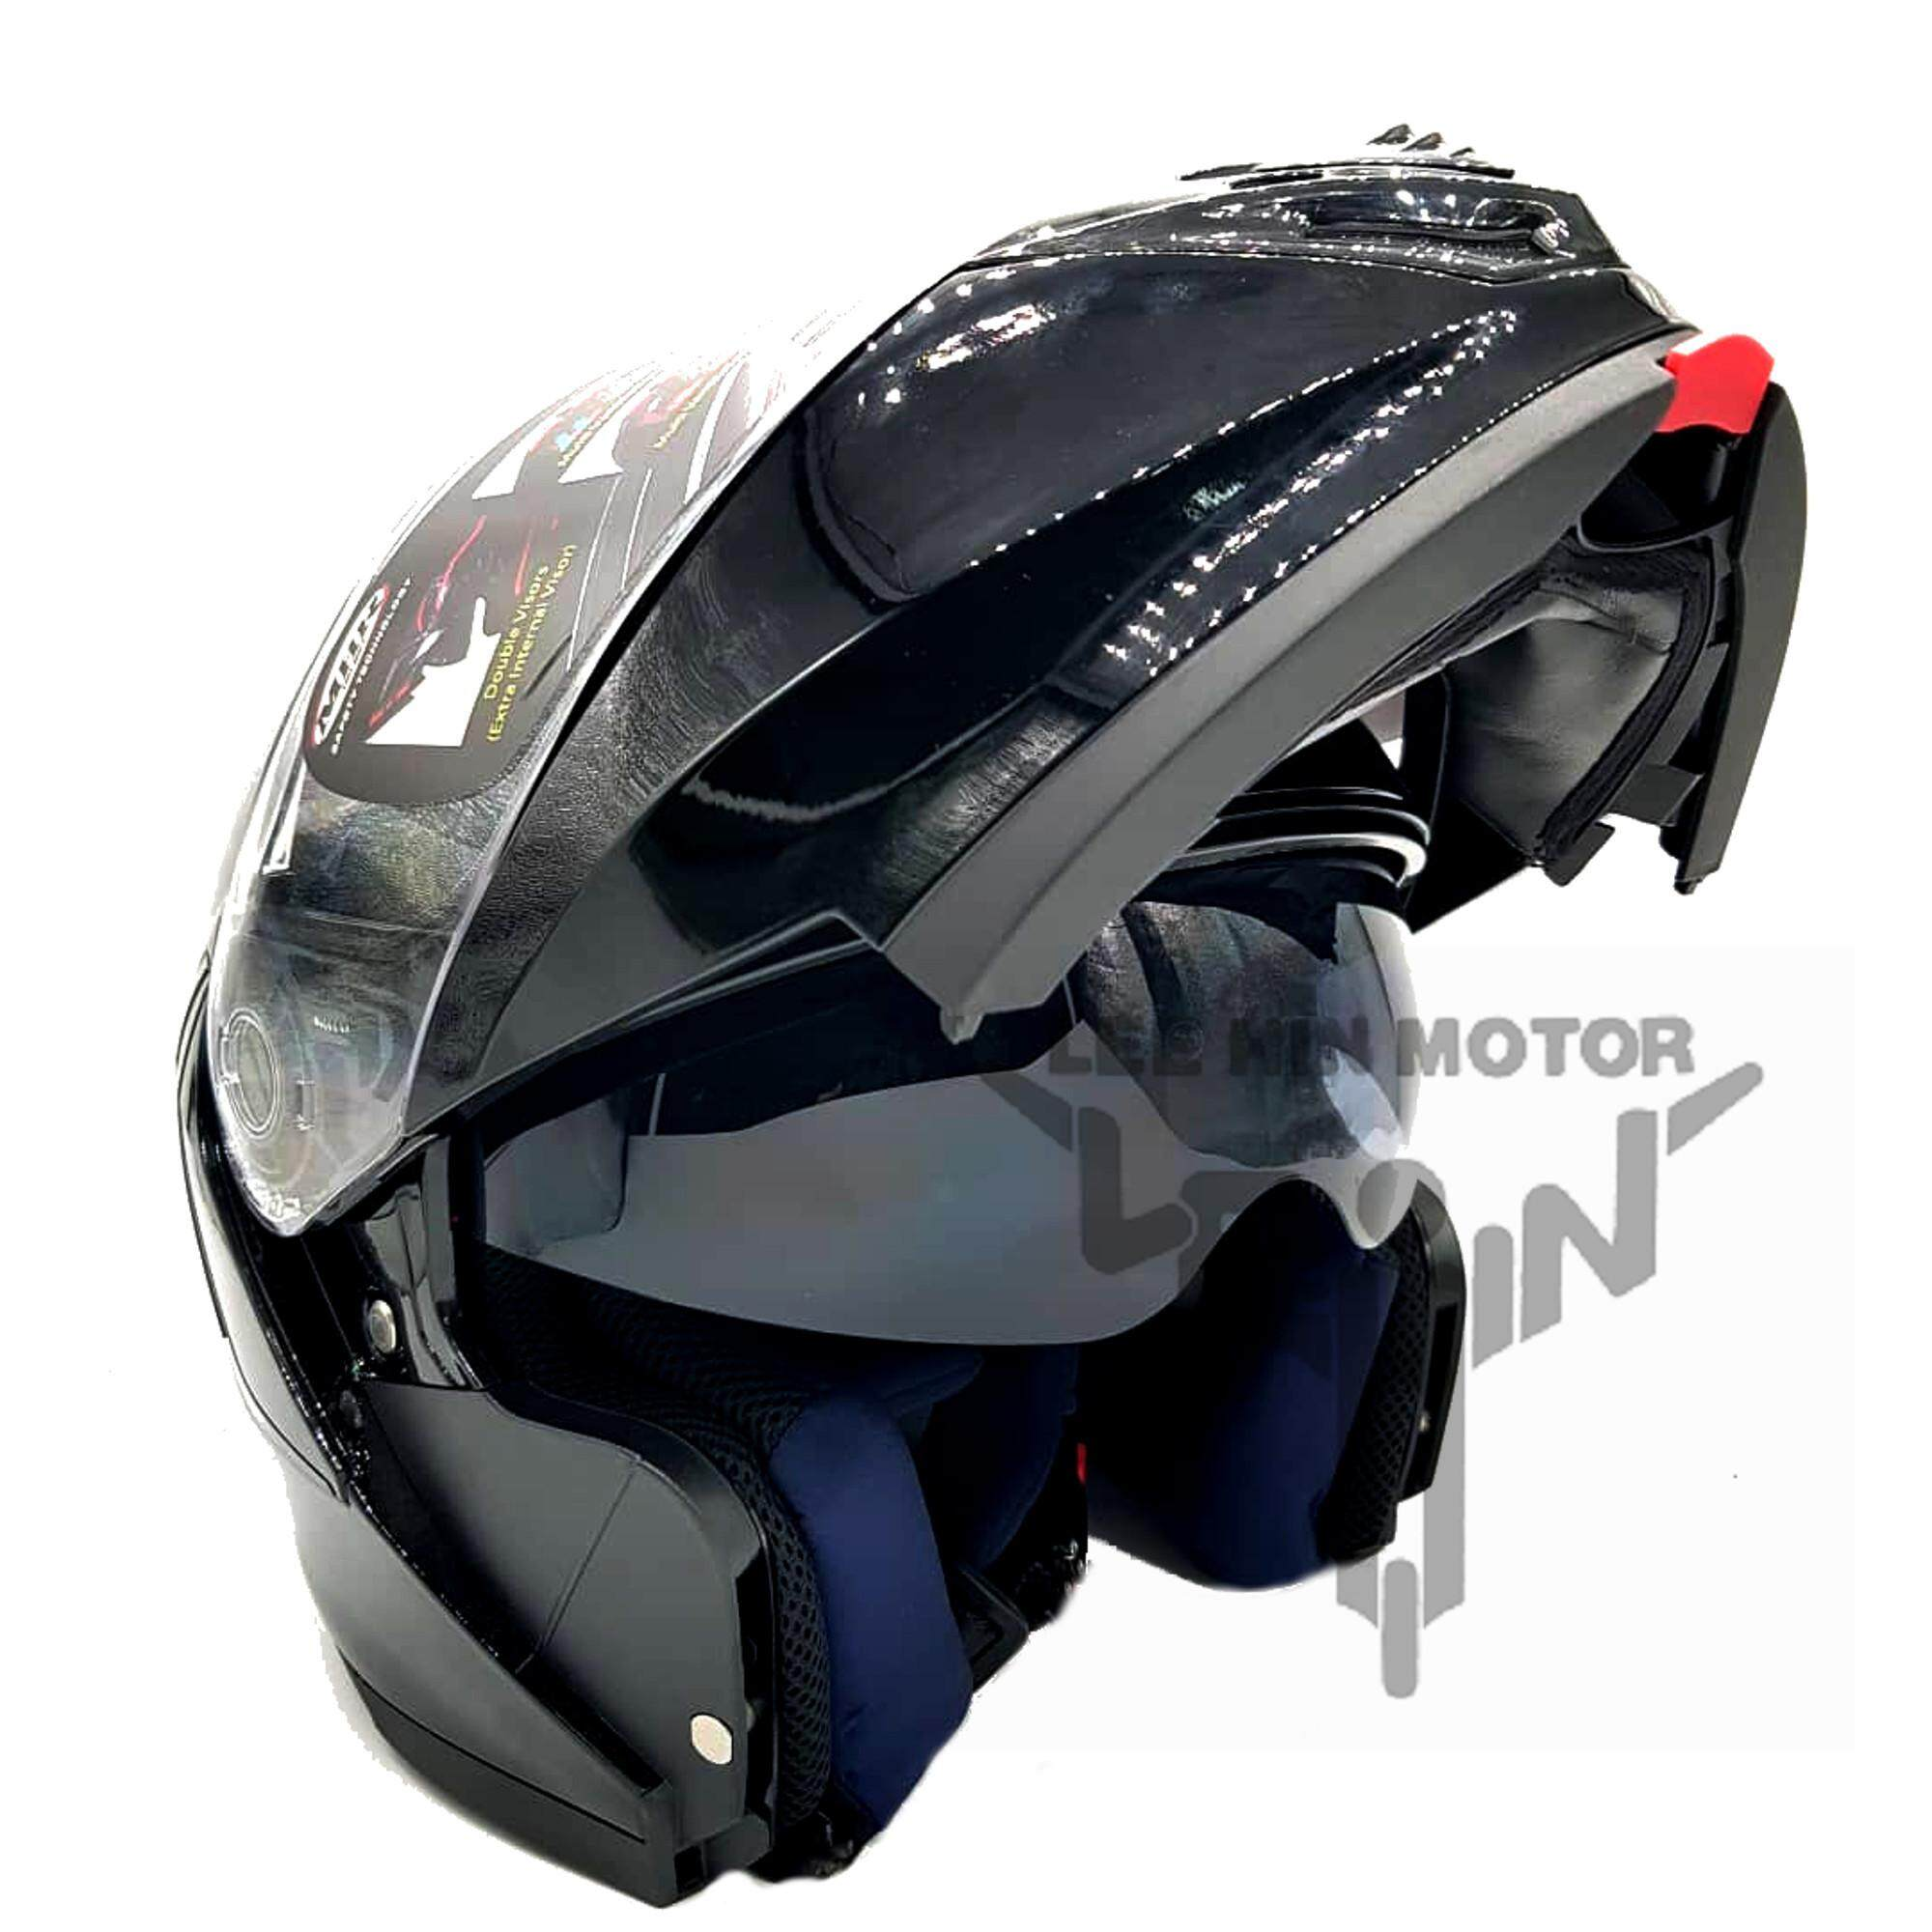 Original MHR FU329 Full Face Double Visor Flip Up Helmet ( Black )